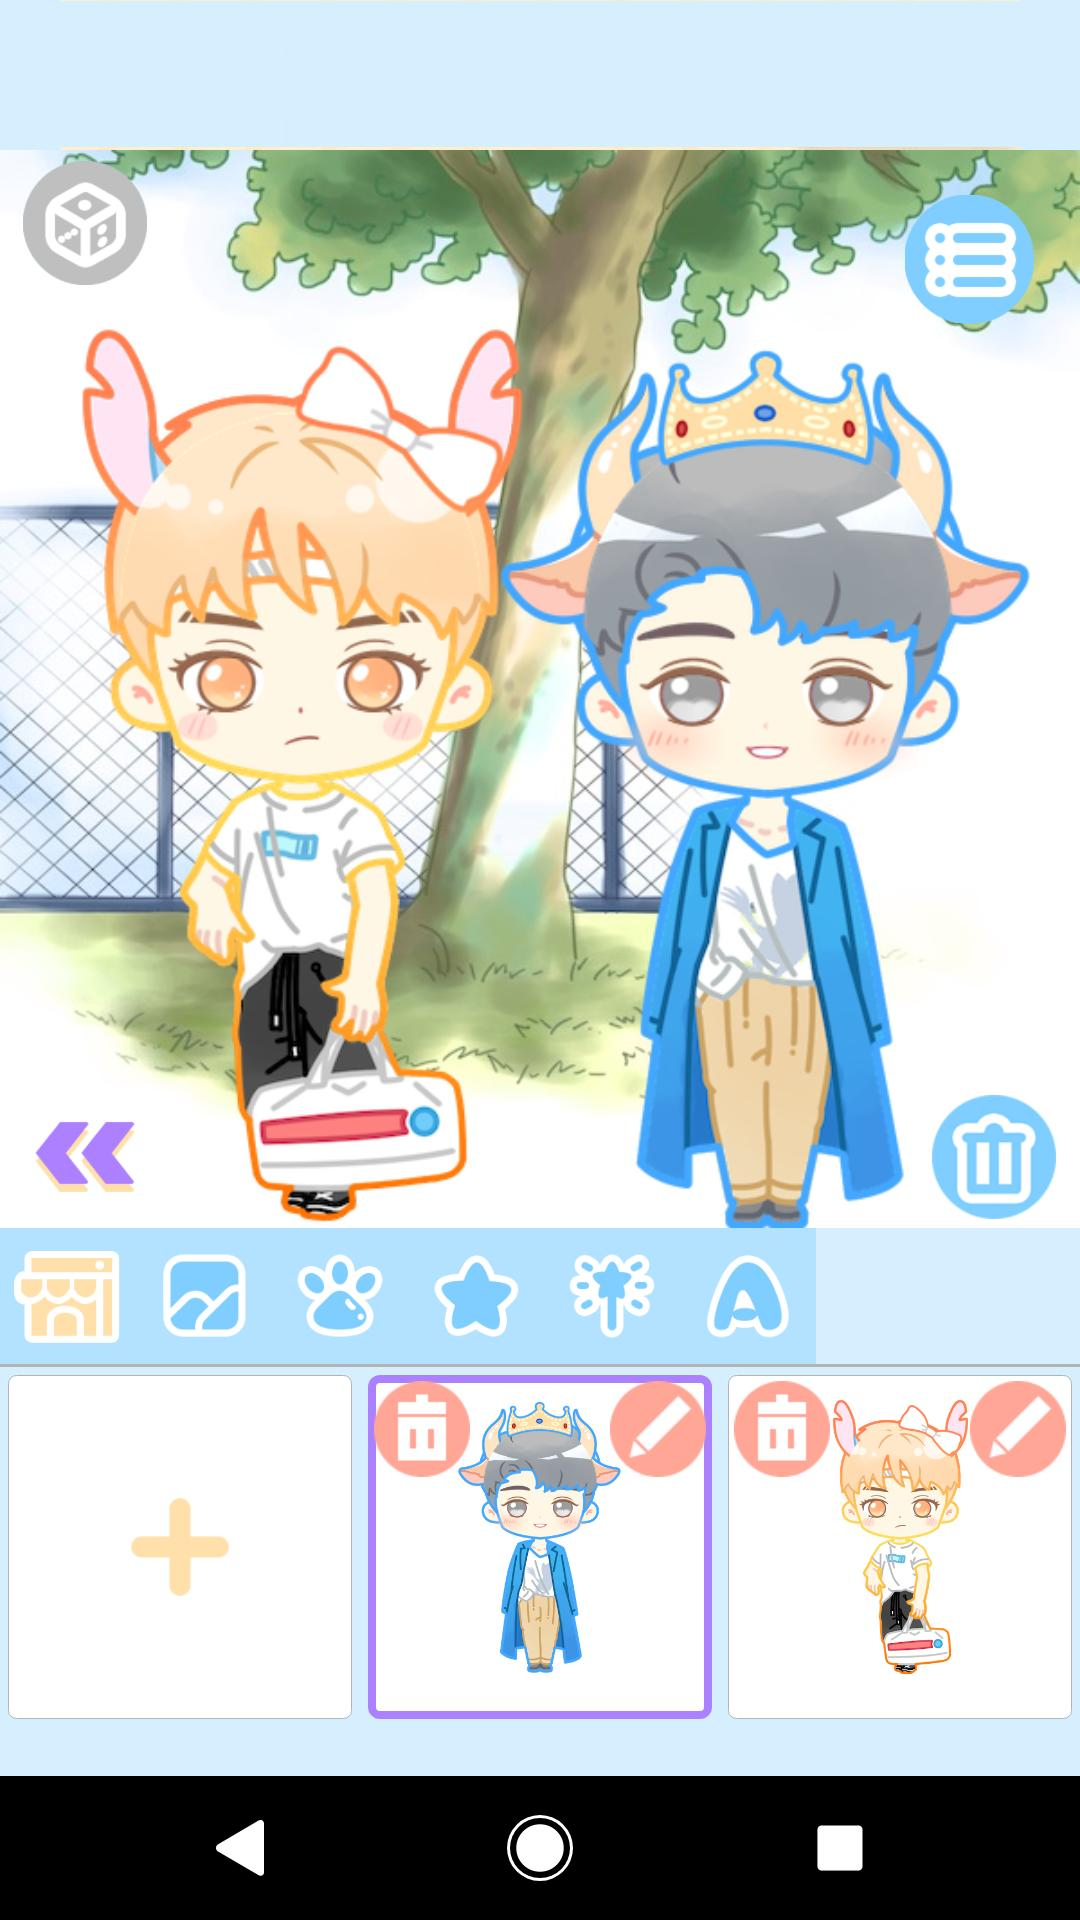 Unnie & Oppa Avatar Maker for Android - APK Download